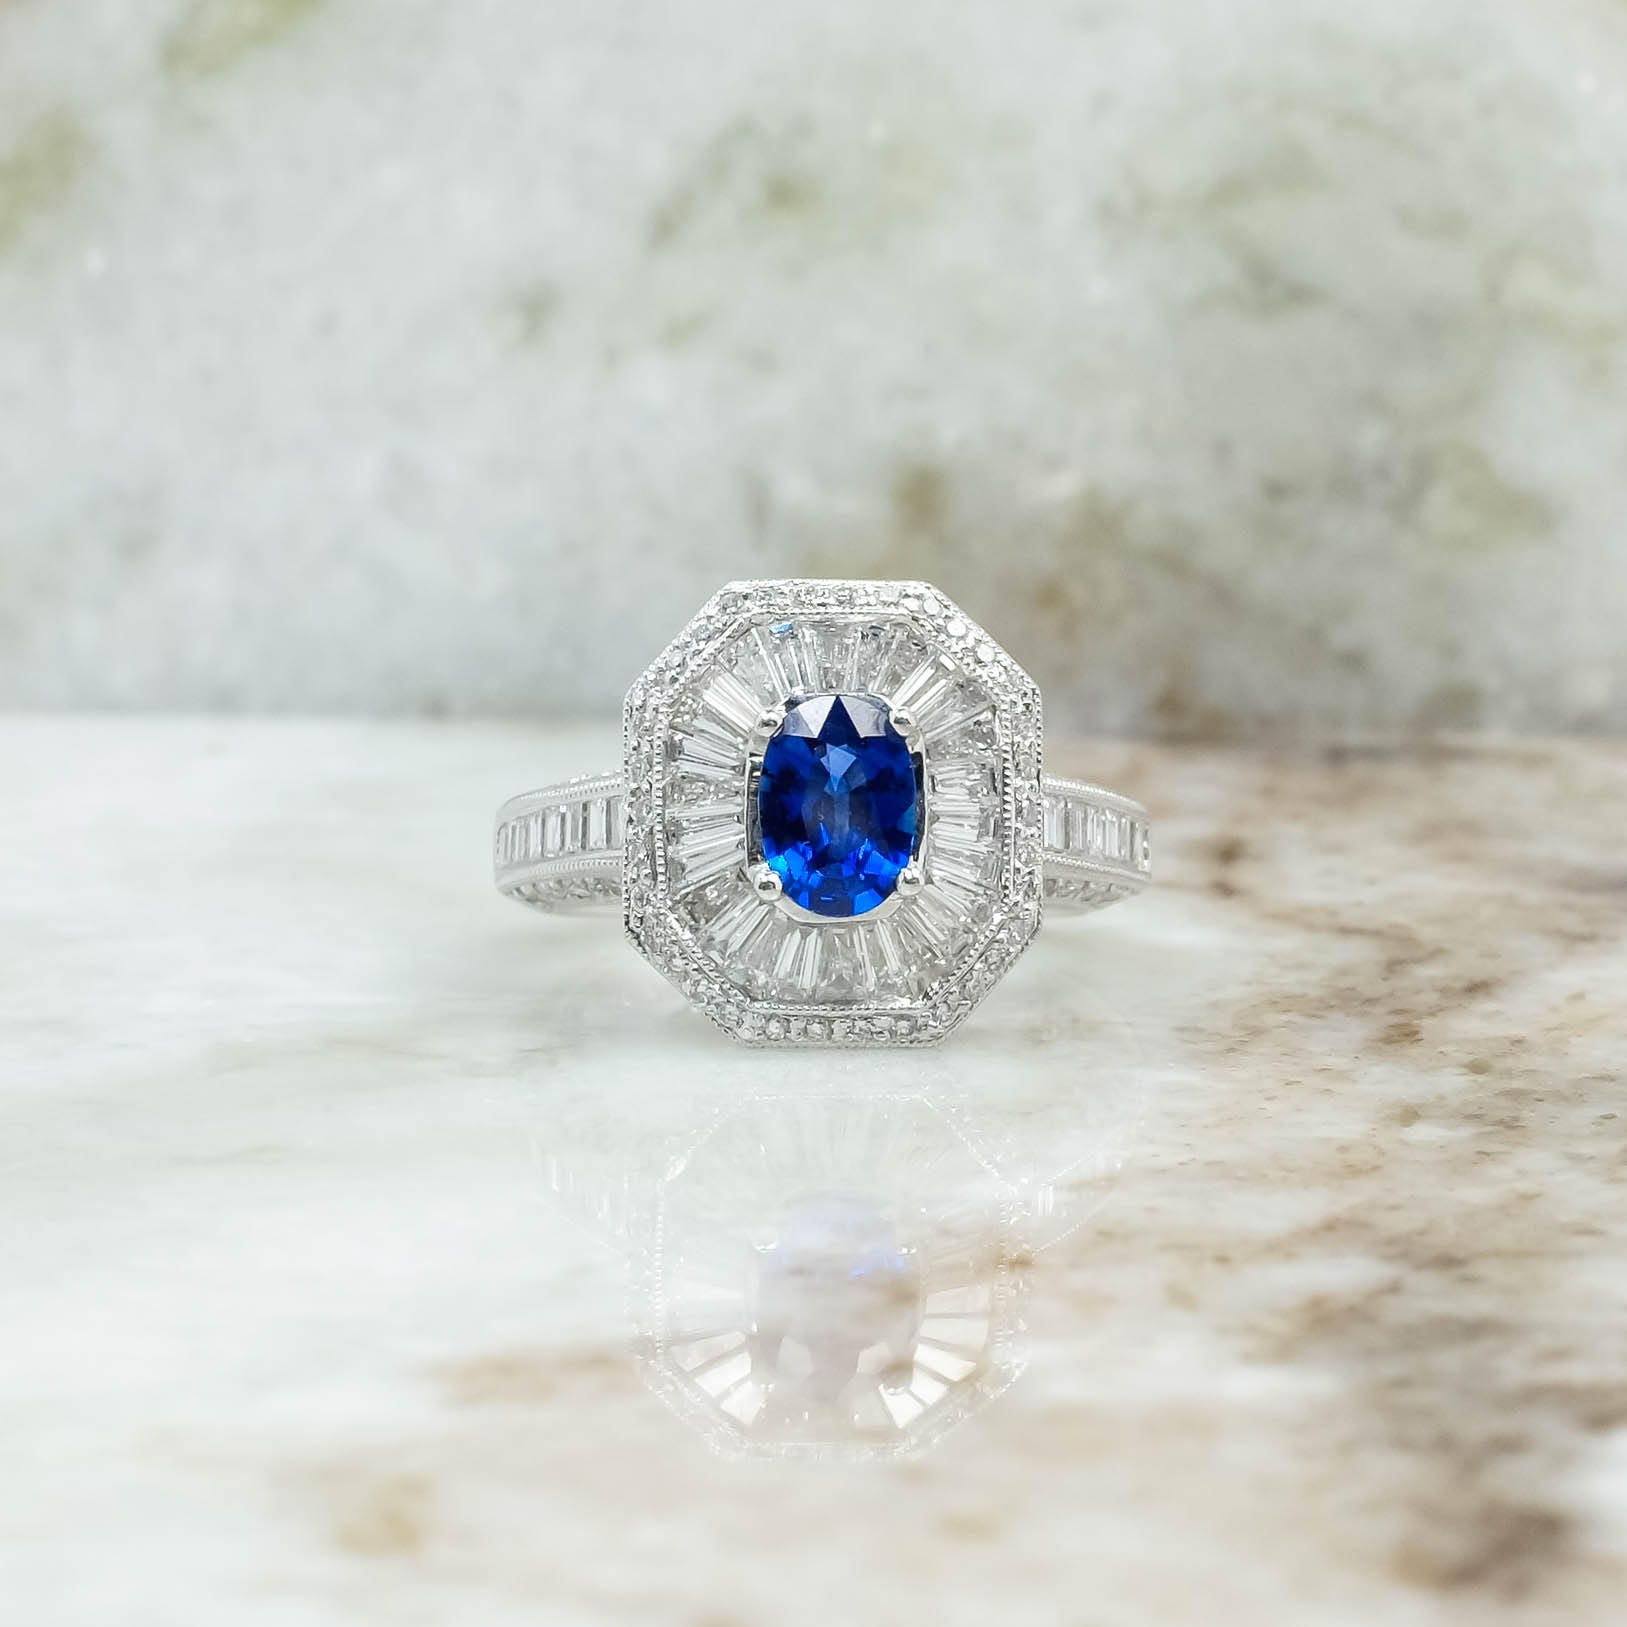 The purity of the diamond determines the chic and sophistication of the whole decoration